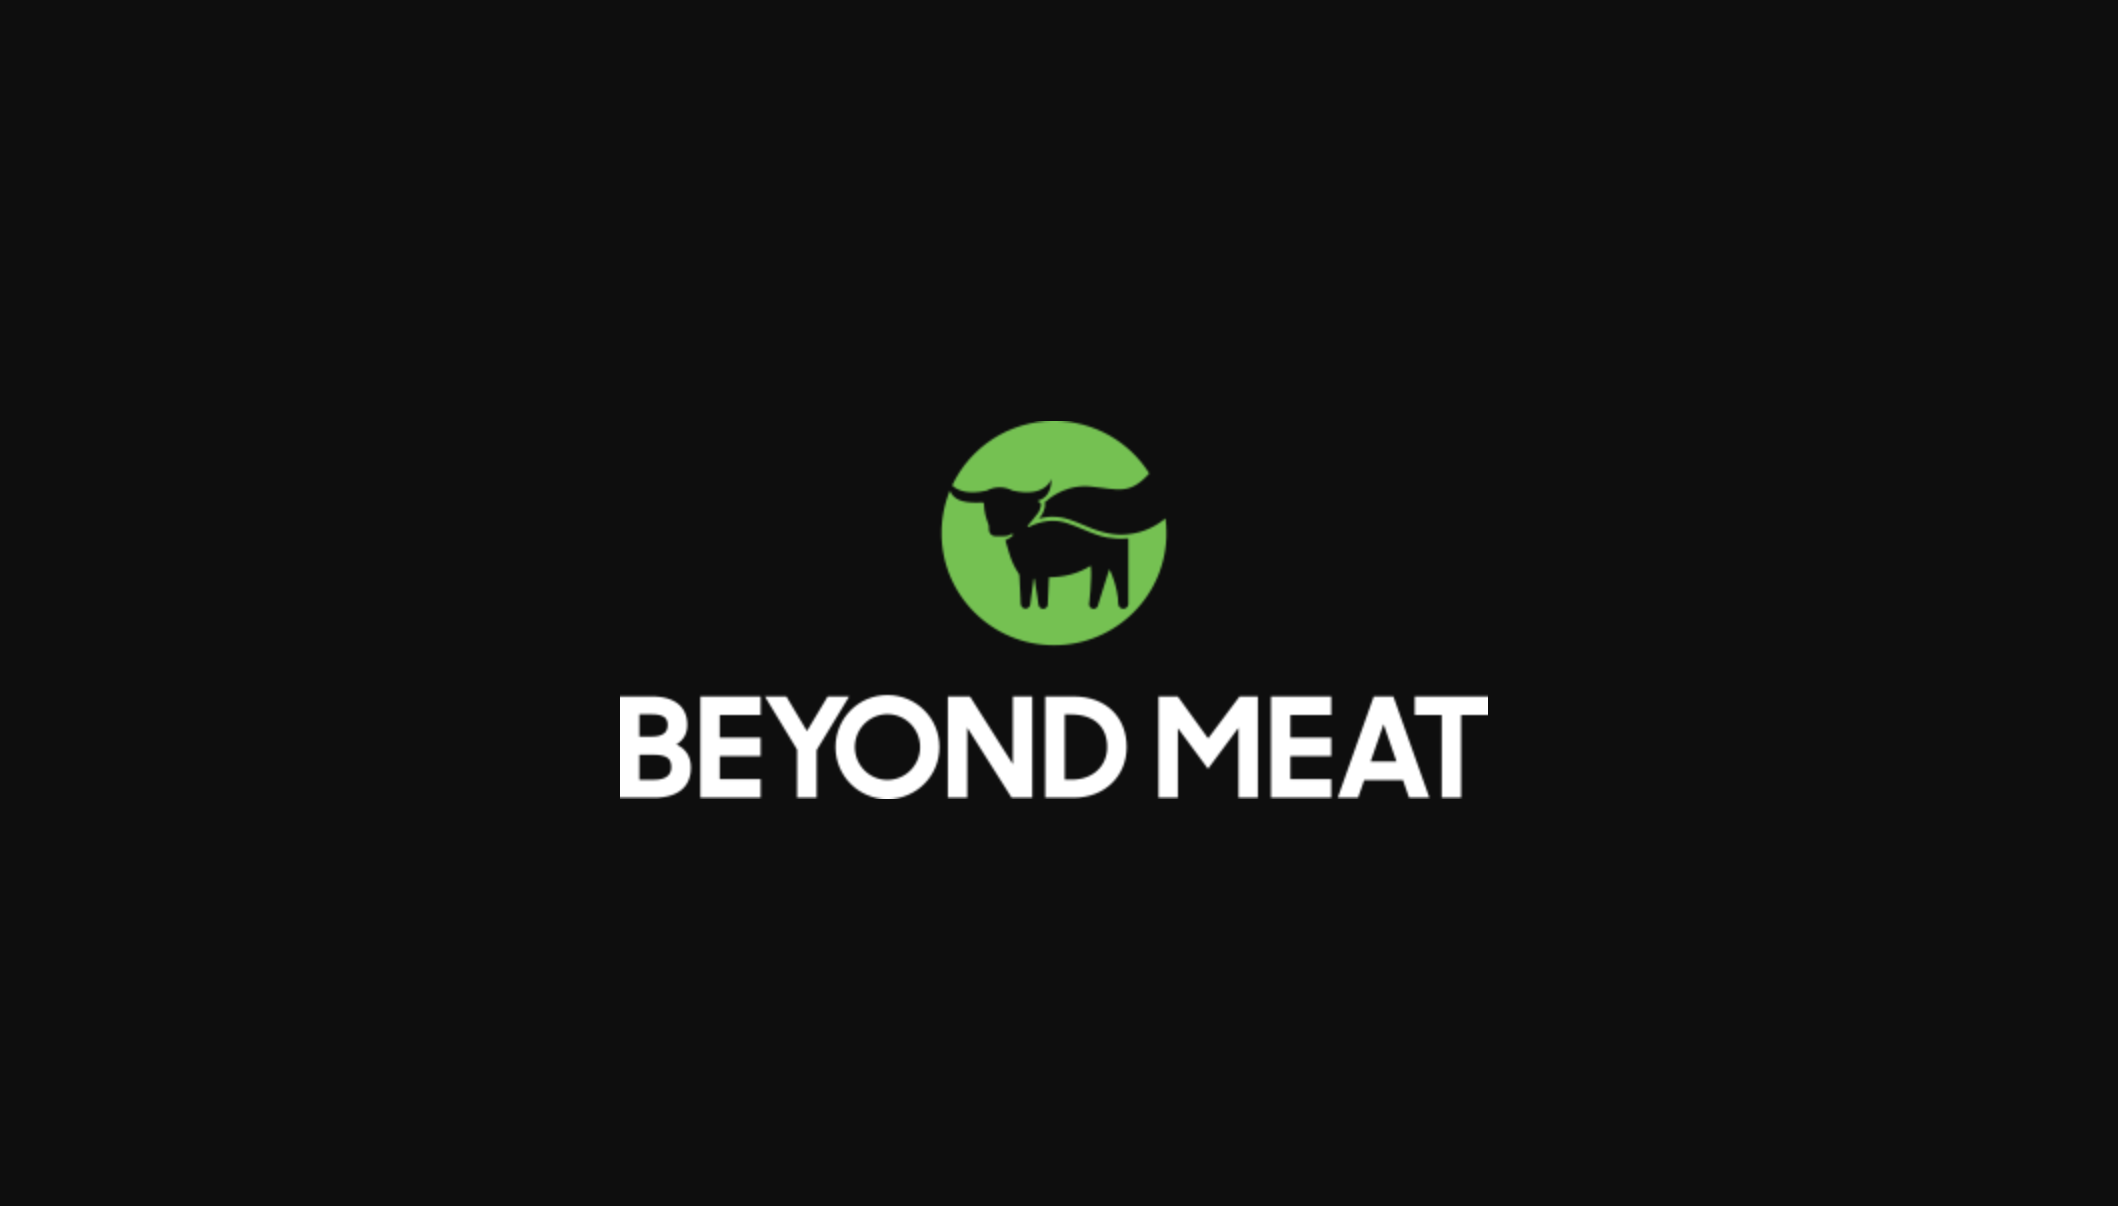 Beyond meat - Plant-based burgers and meat